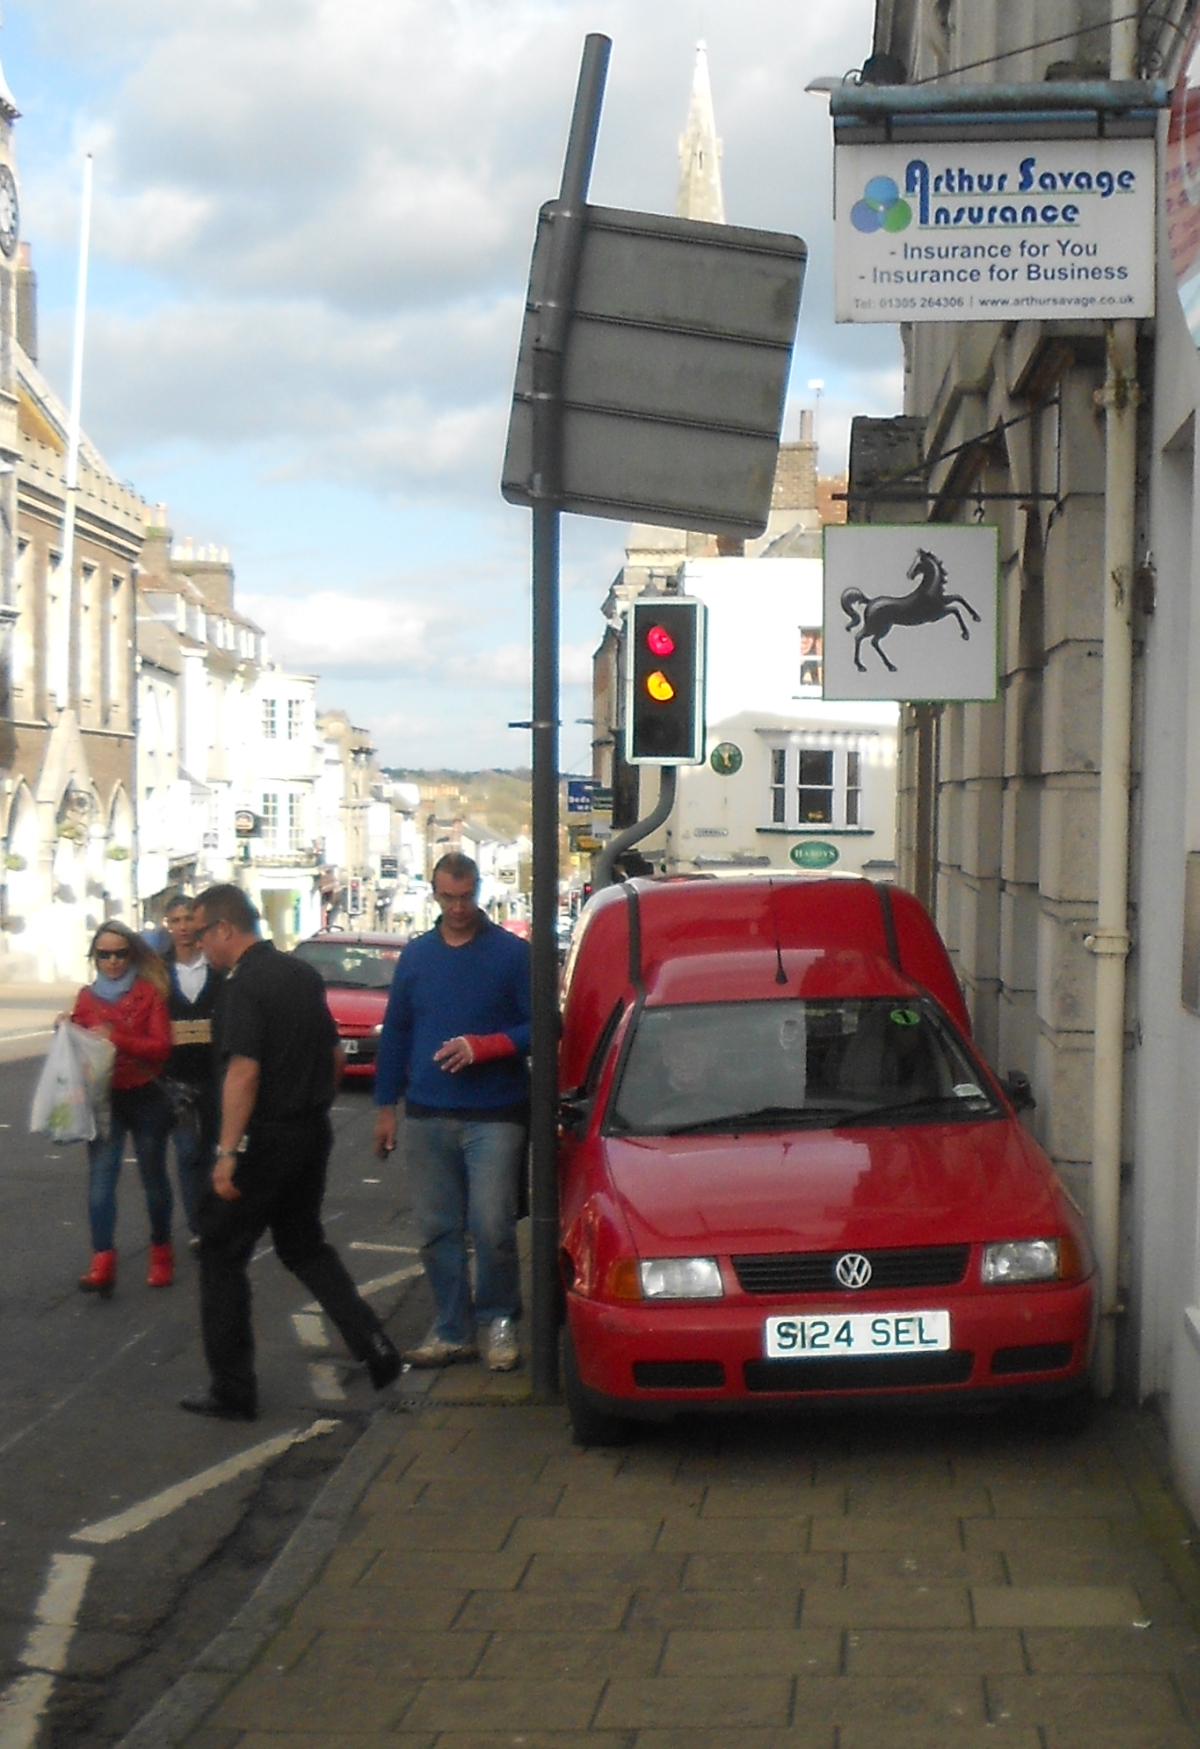 Car gets stuck between building and signpost in Dorchester